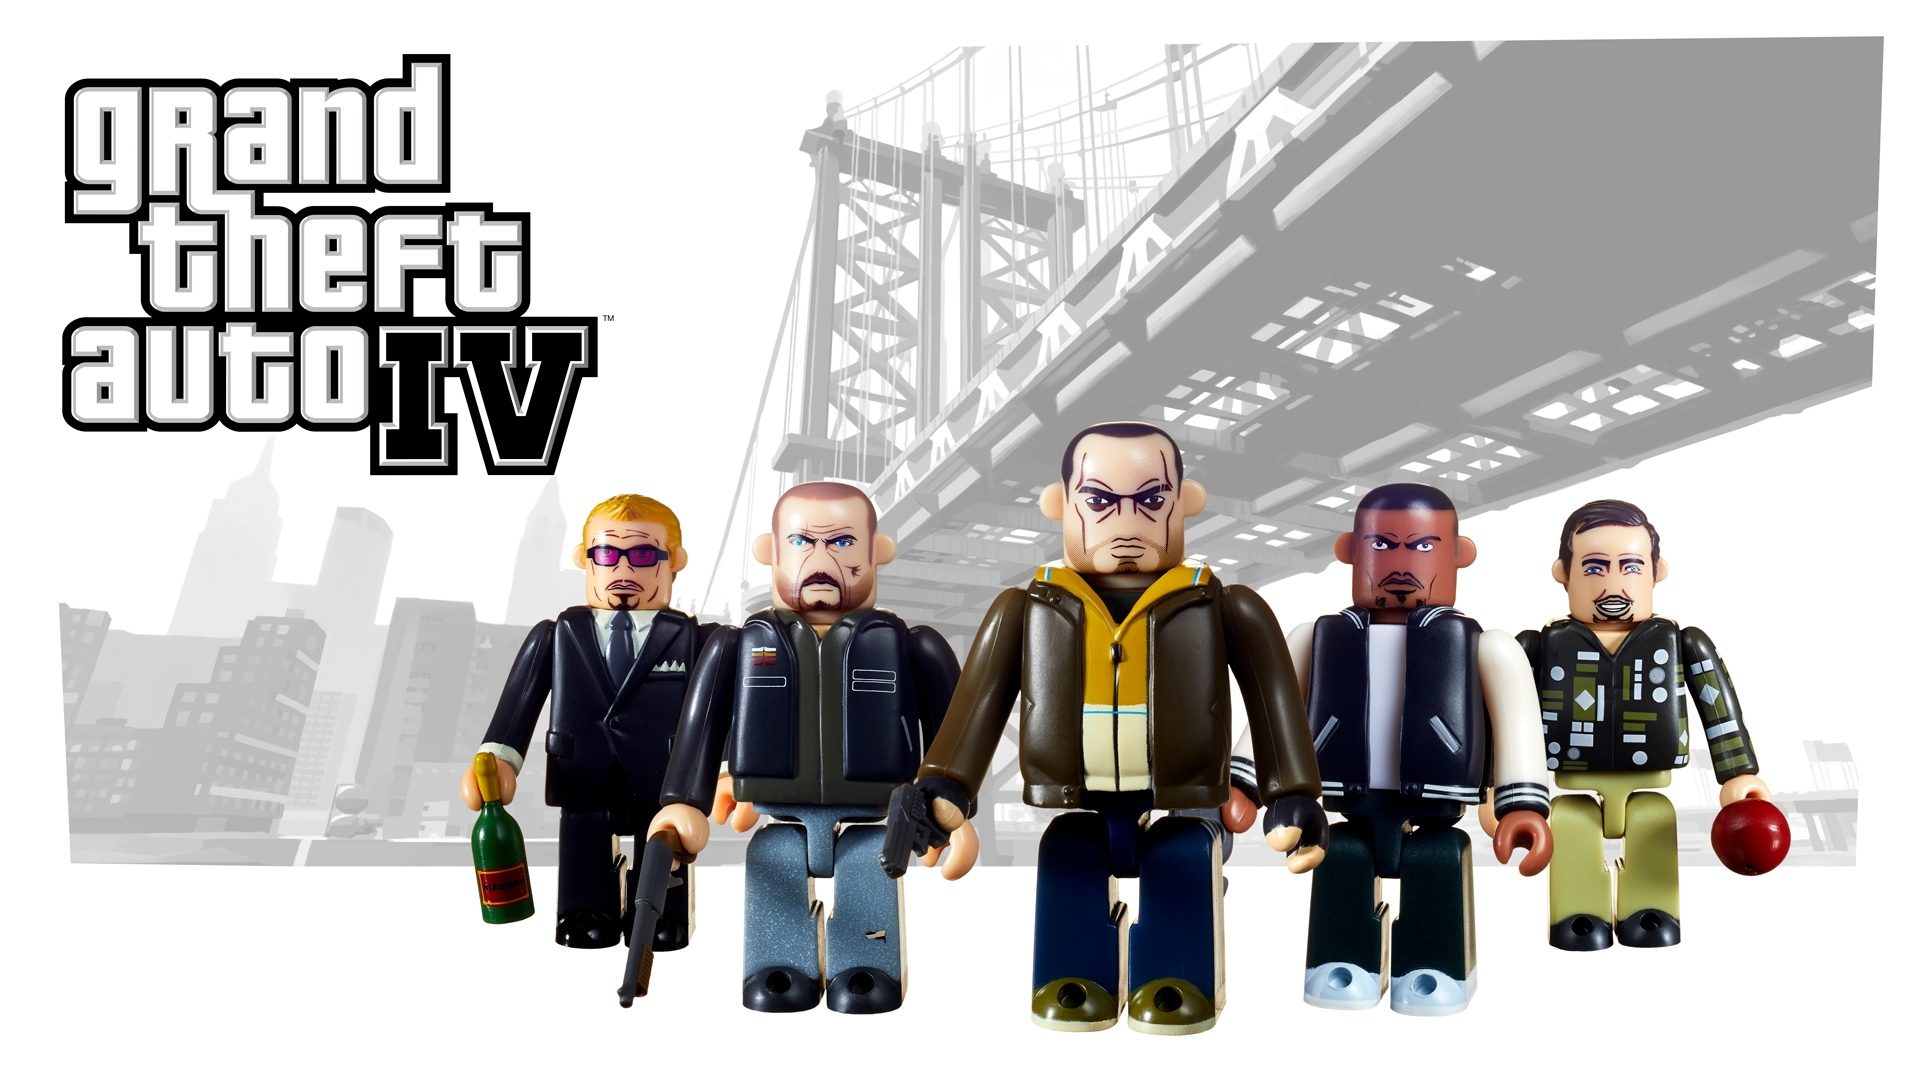 New Grand Theft Auto Kubrick Sets Coming September 14